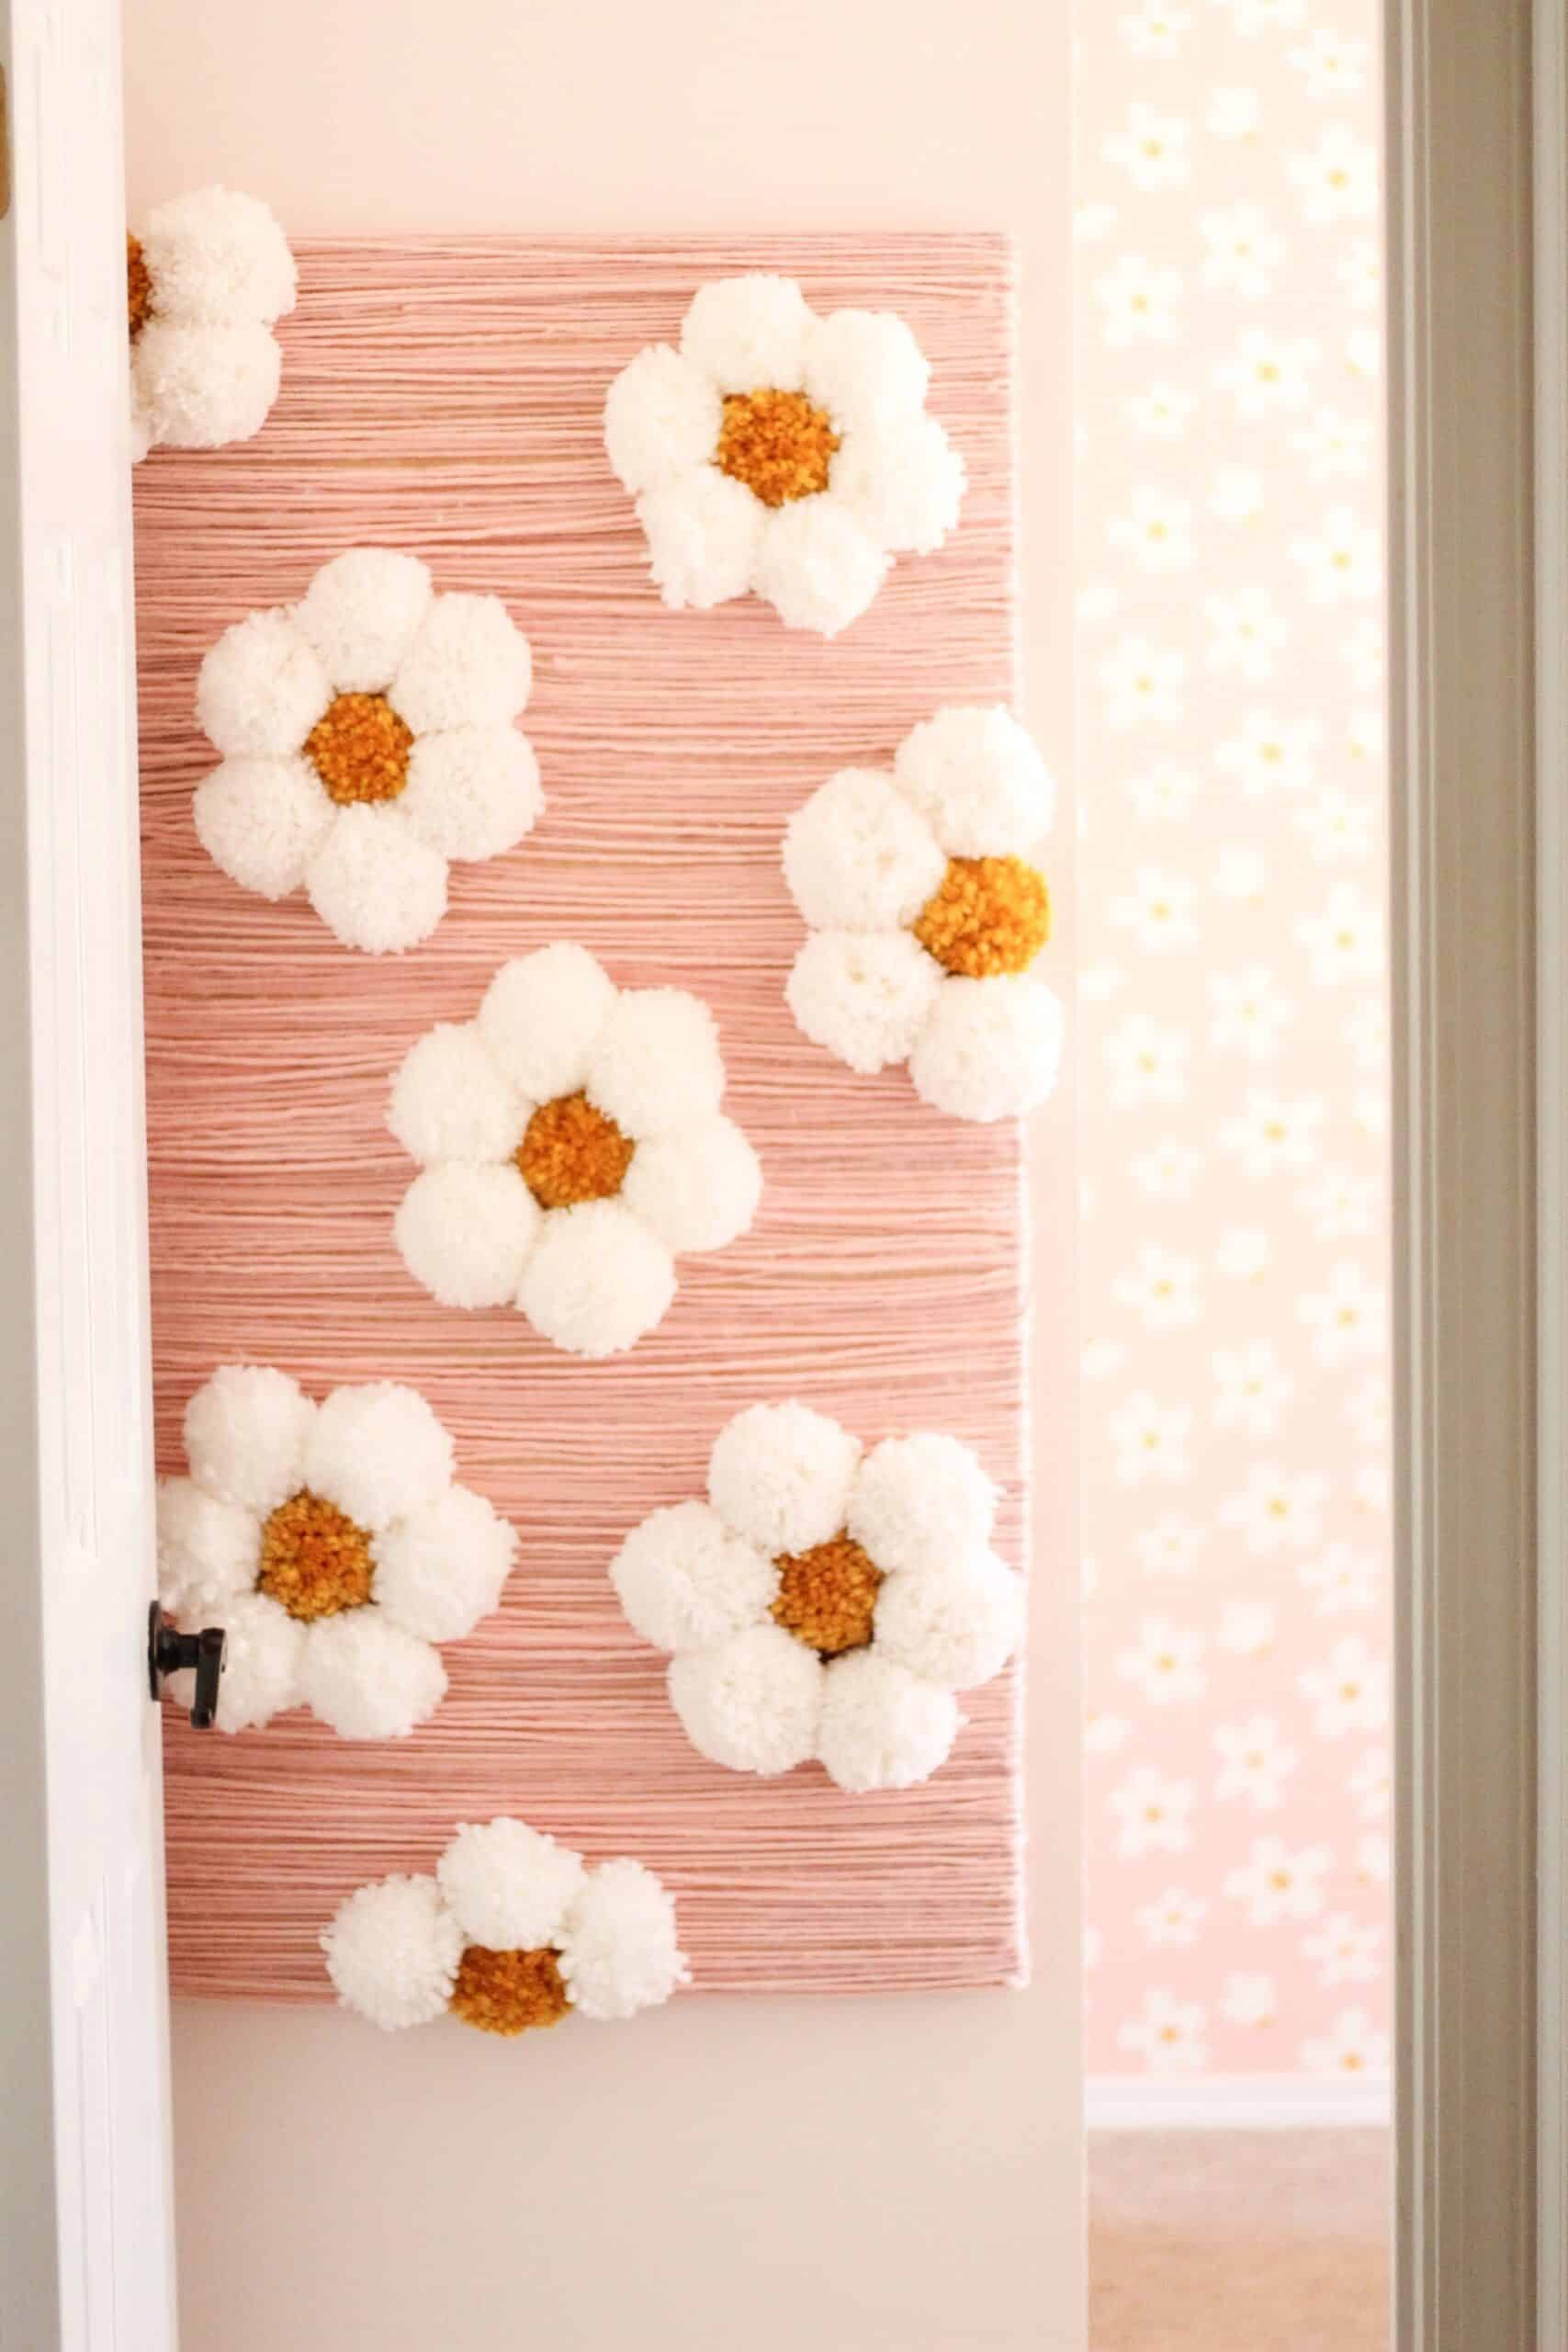 pom pom daisies for a DIY flower wall